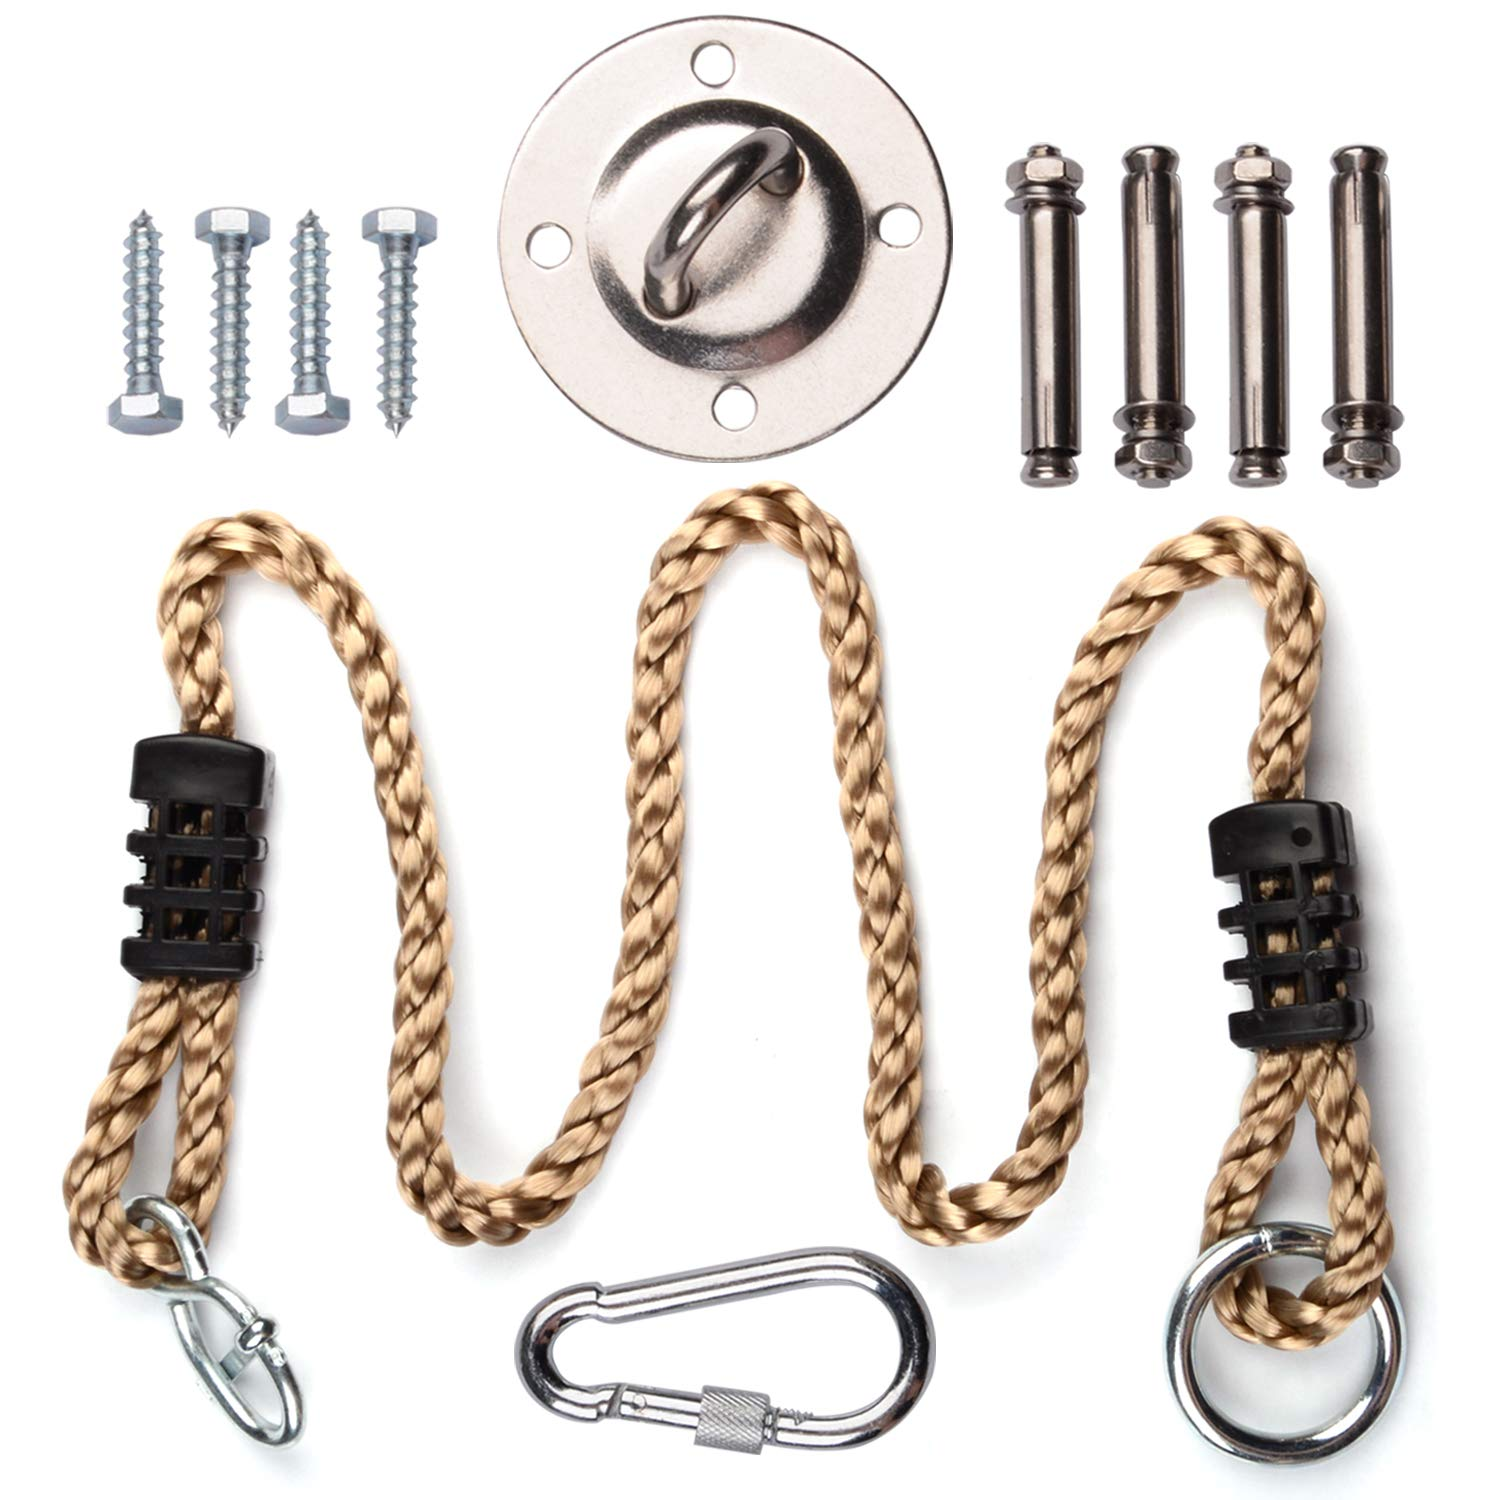 Amotor Hammock Hanging Kit, Stainless Steel Hammock Hook 600 LB with 40″ Nylon Rope for Hammock, Hanging Chair, Punching Bag, Yoga Training, Ceiling,Swings